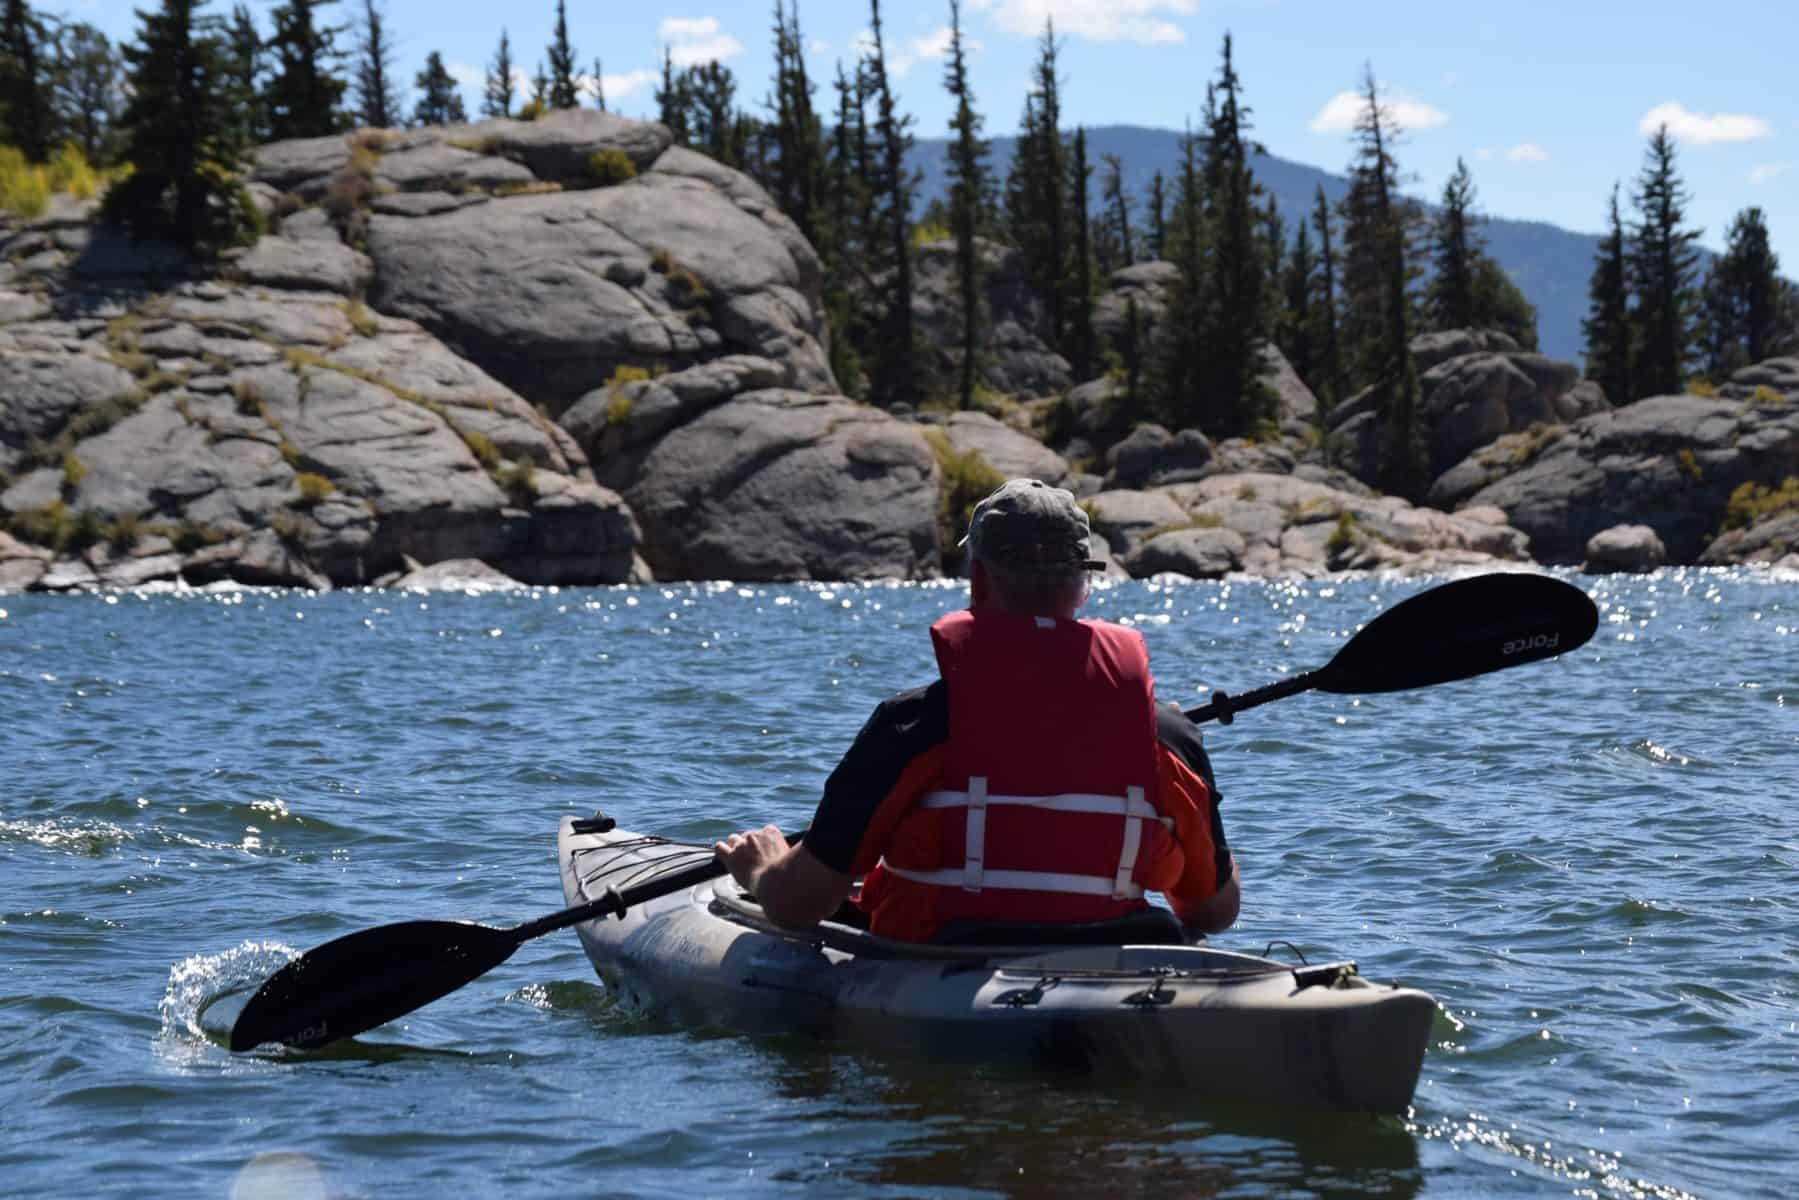 A Kayakers Paddling With A LIfe Vest On